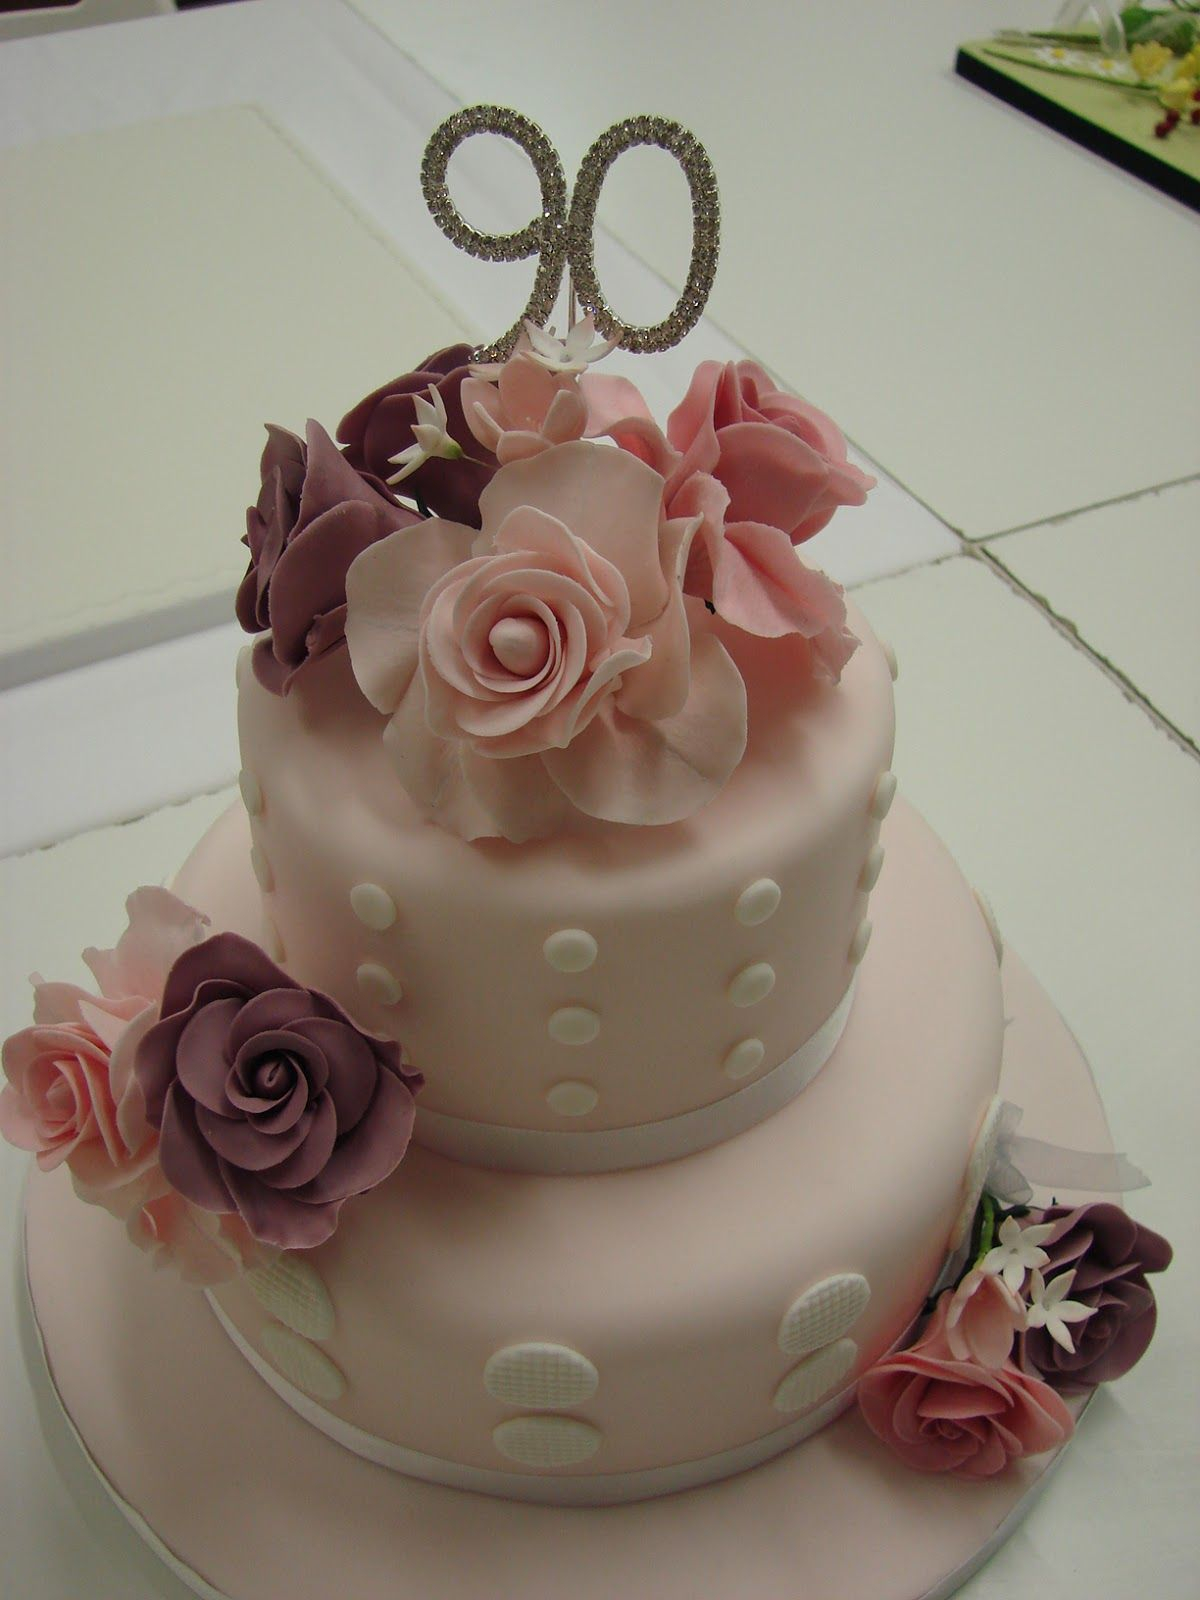 90Th Birthday Cake Ideas 90th Birthday Cakes 90th Birthday Cake Cakeslove A Pretty